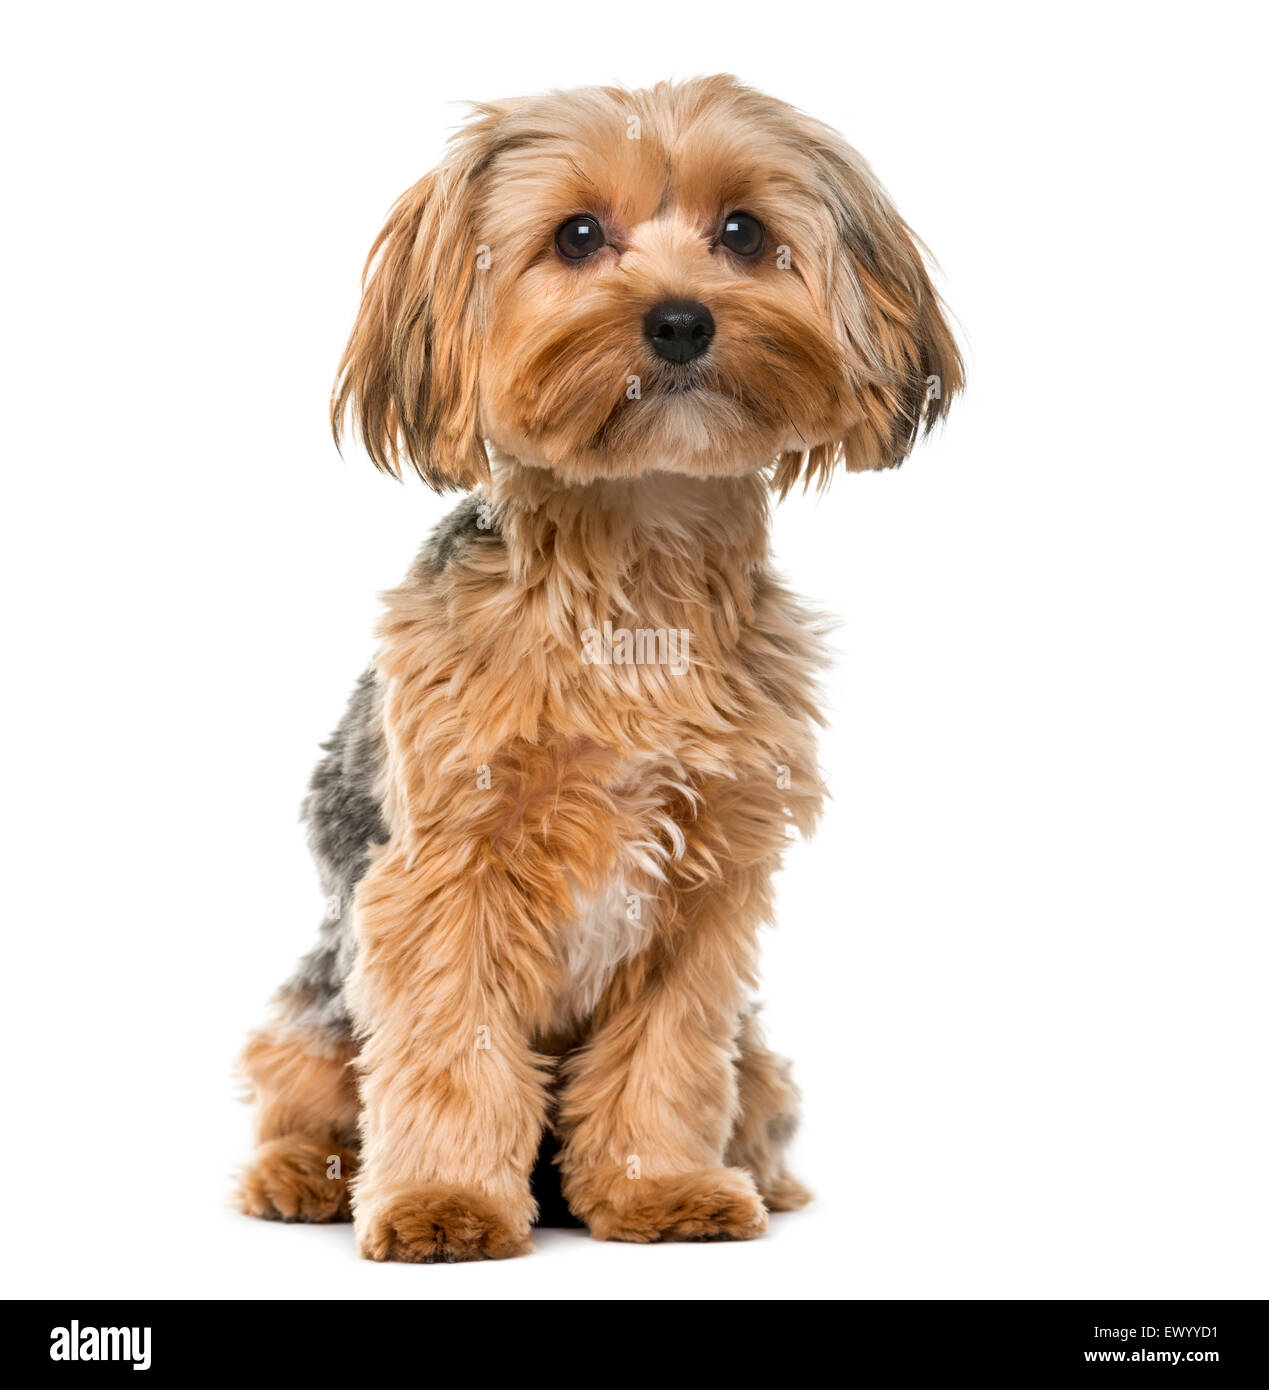 Yorkshire terrier in front of a white background - Stock Image